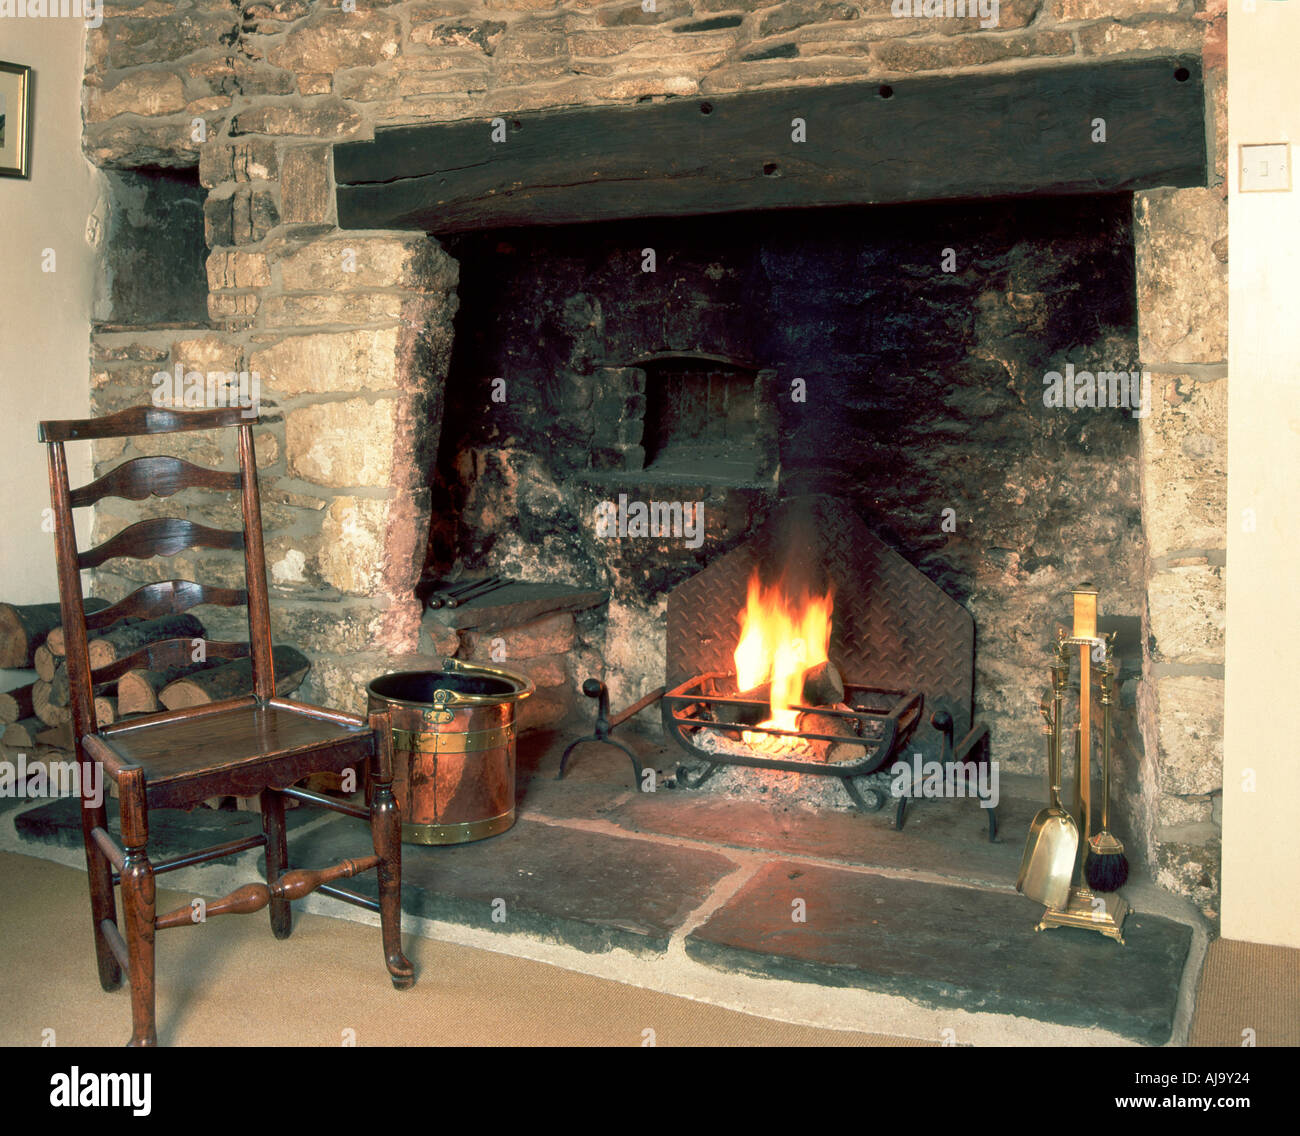 fireside chair by old stone fireplace stock photo royalty free image 4790051 alamy. Black Bedroom Furniture Sets. Home Design Ideas